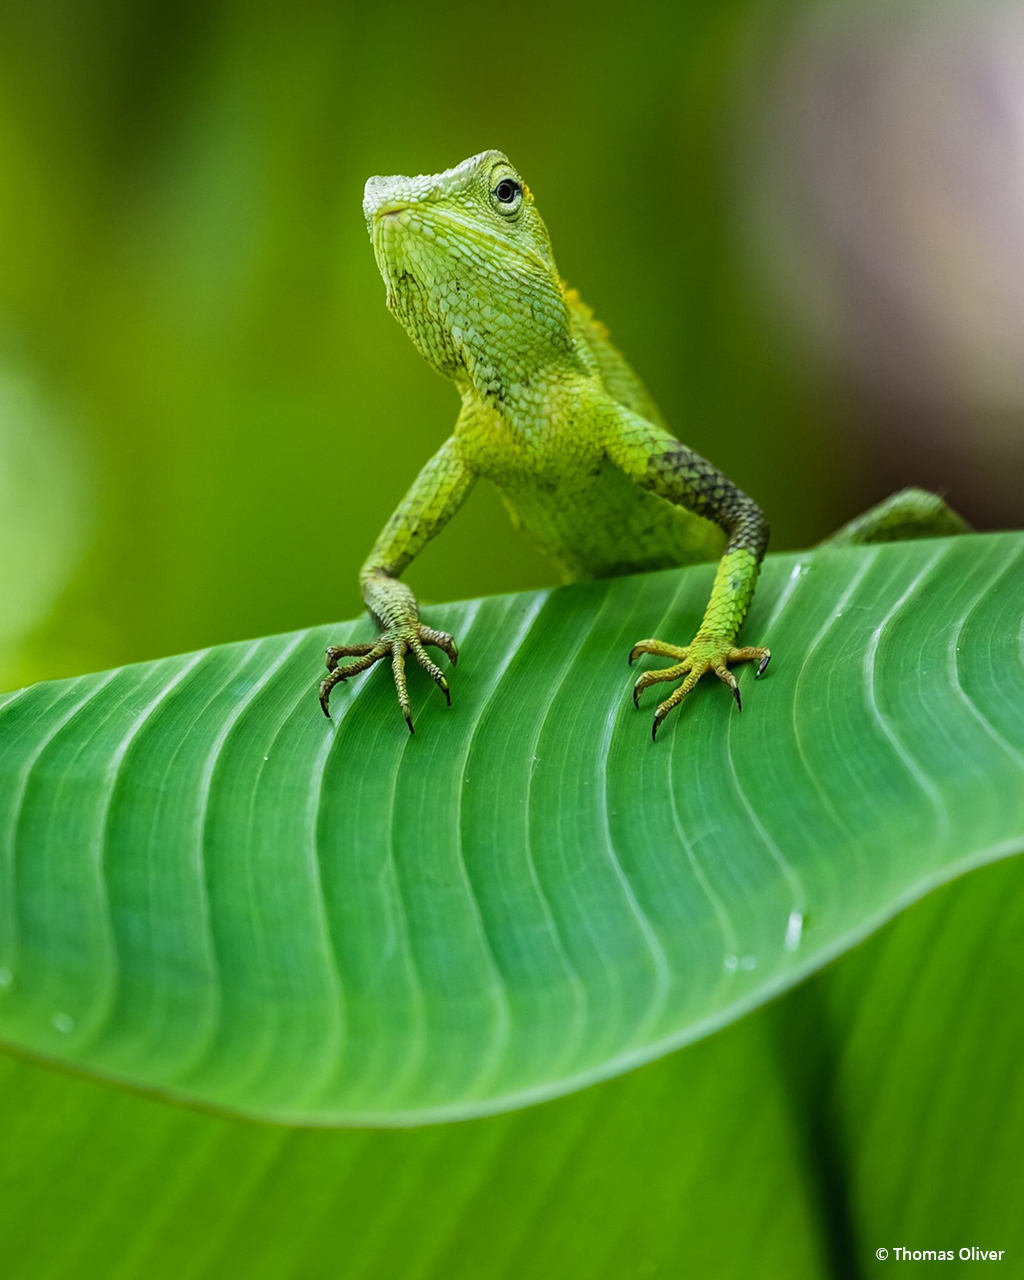 """Today's Photo Of The Day is """"Maned Forest Lizard in Bali"""" by Thomas Oliver. Location: Ubud, Bali."""